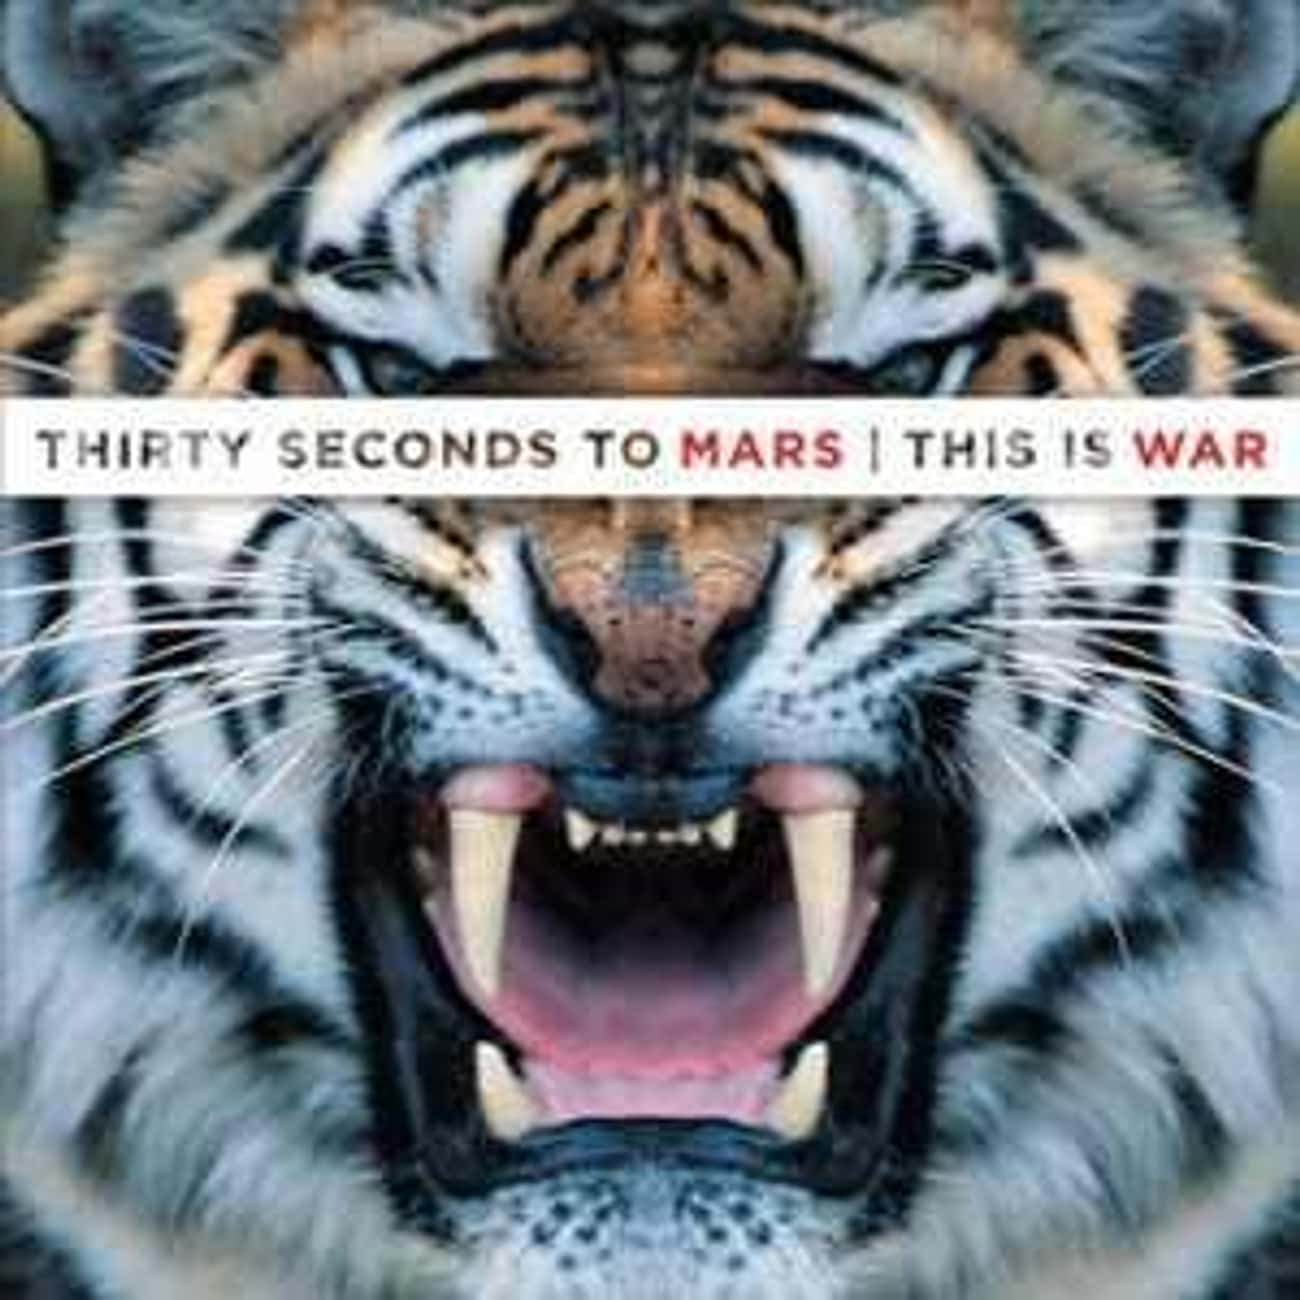 This Is War is listed (or ranked) 1 on the list The Best 30 Seconds To Mars Albums of All Time